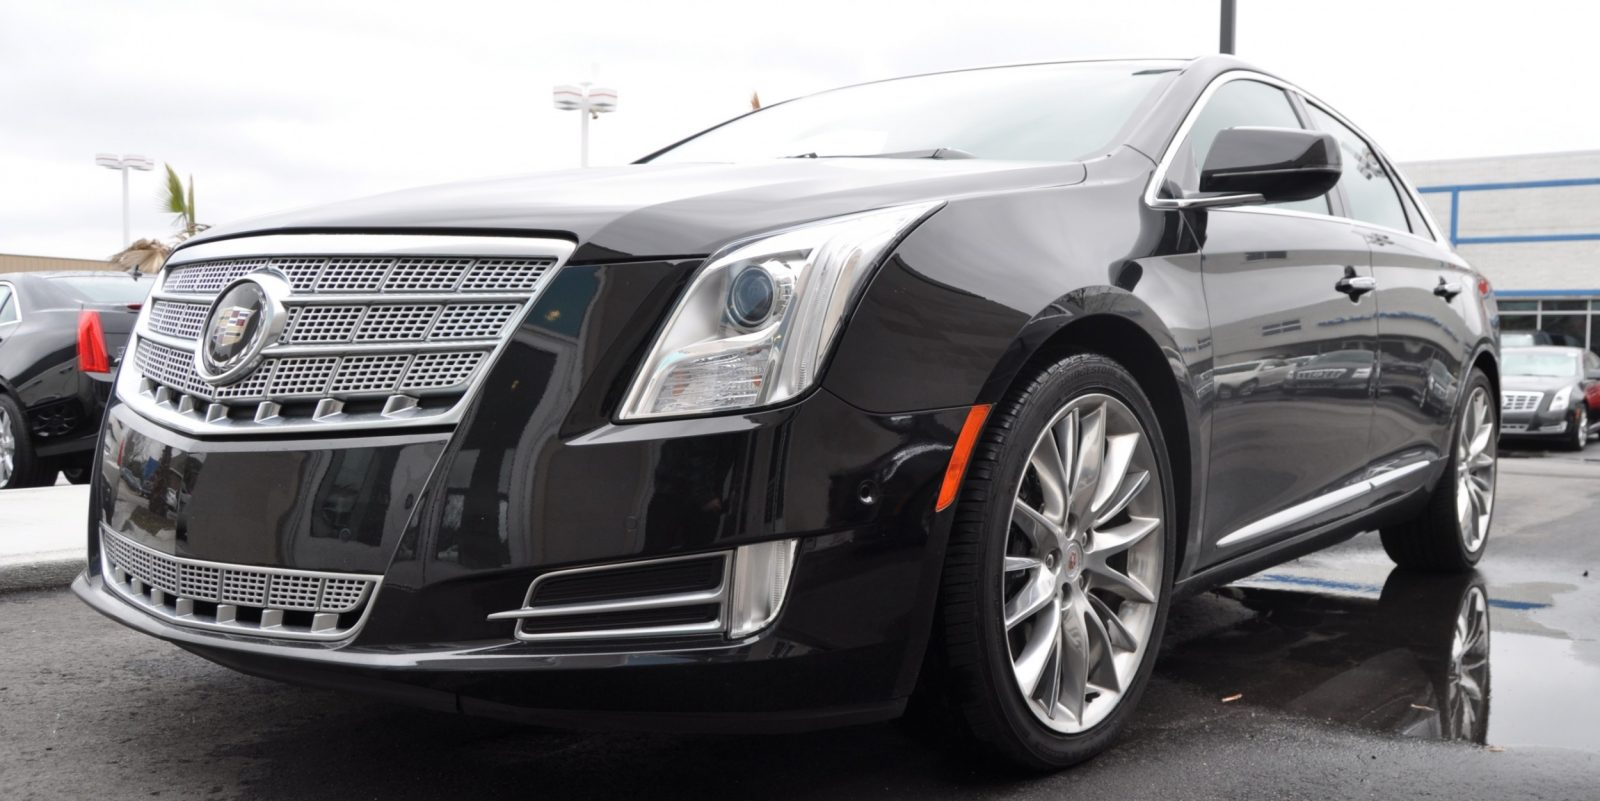 2014 Cadillac XTS4 Platinum Vsport -- First Drive Video and Photos 12